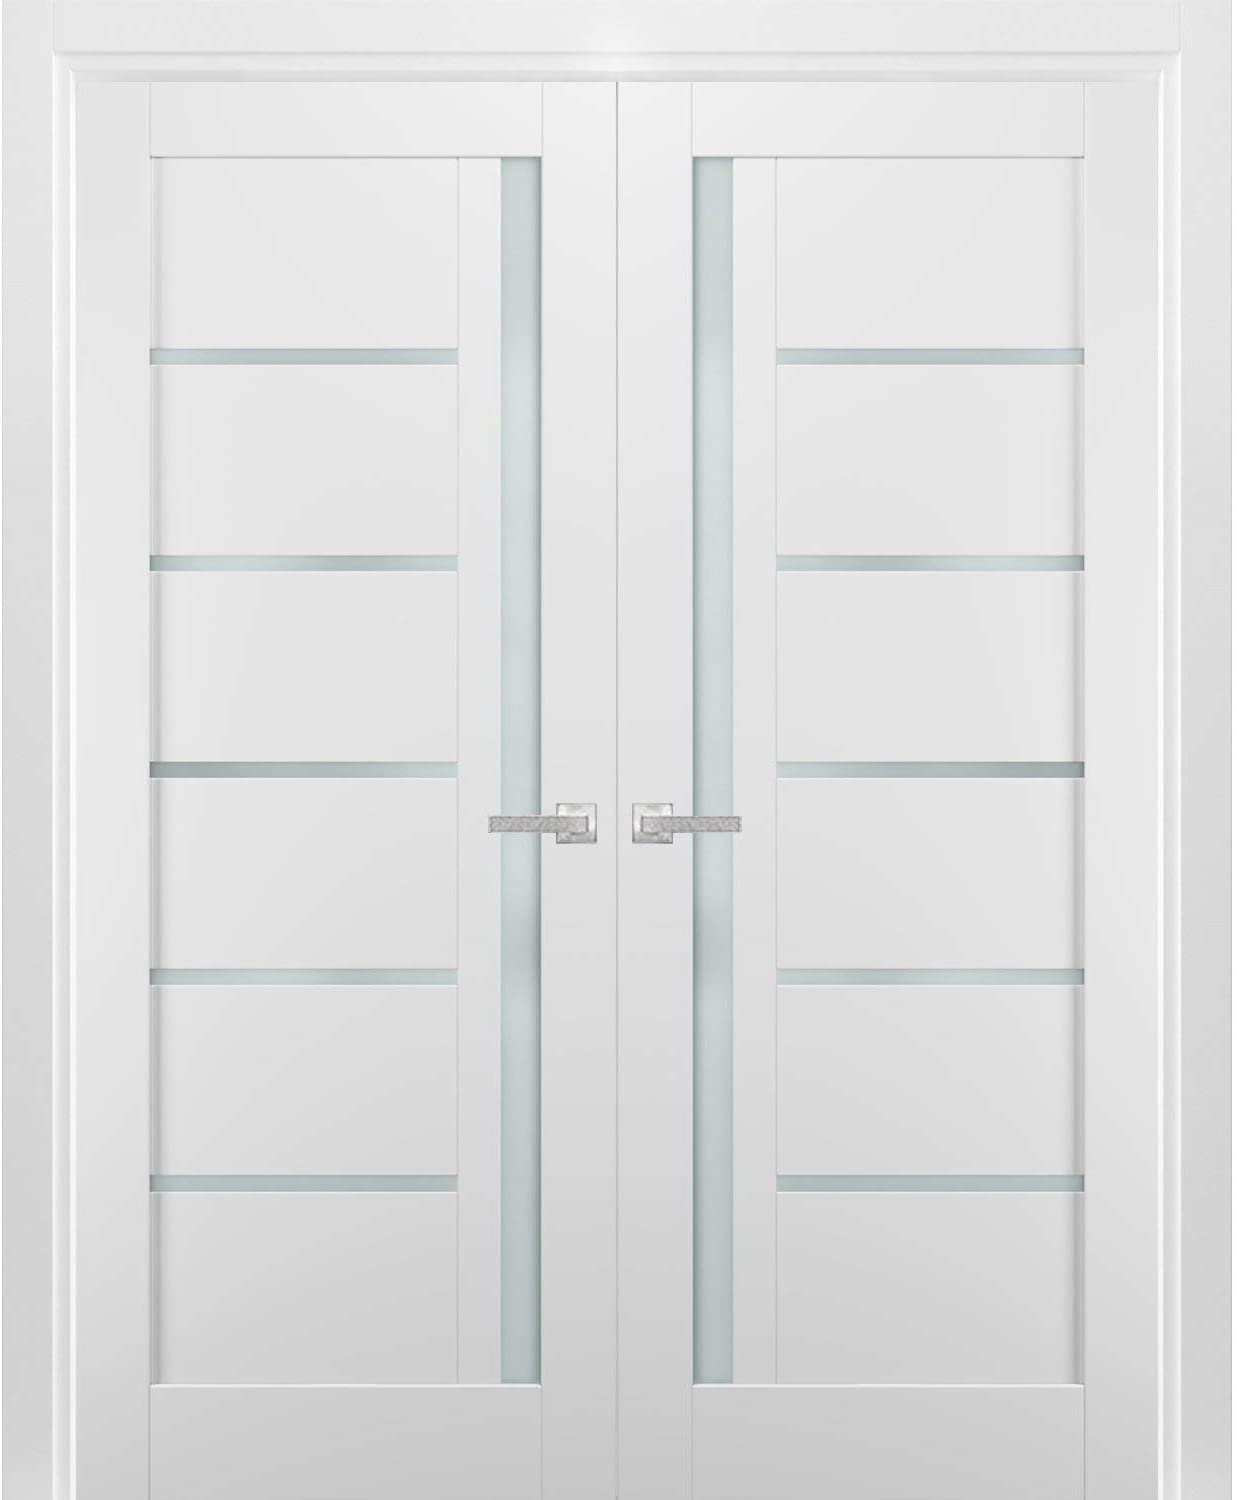 French Double Panel Lite Doors 48 X 96 With Hardware Quadro 4088 White Silk With Frosted Opaque Glass Pre Hung Panel Frame Trims Bathroom Bedroom Interior Sturdy Door Amazon Ca Tools Home Improvement